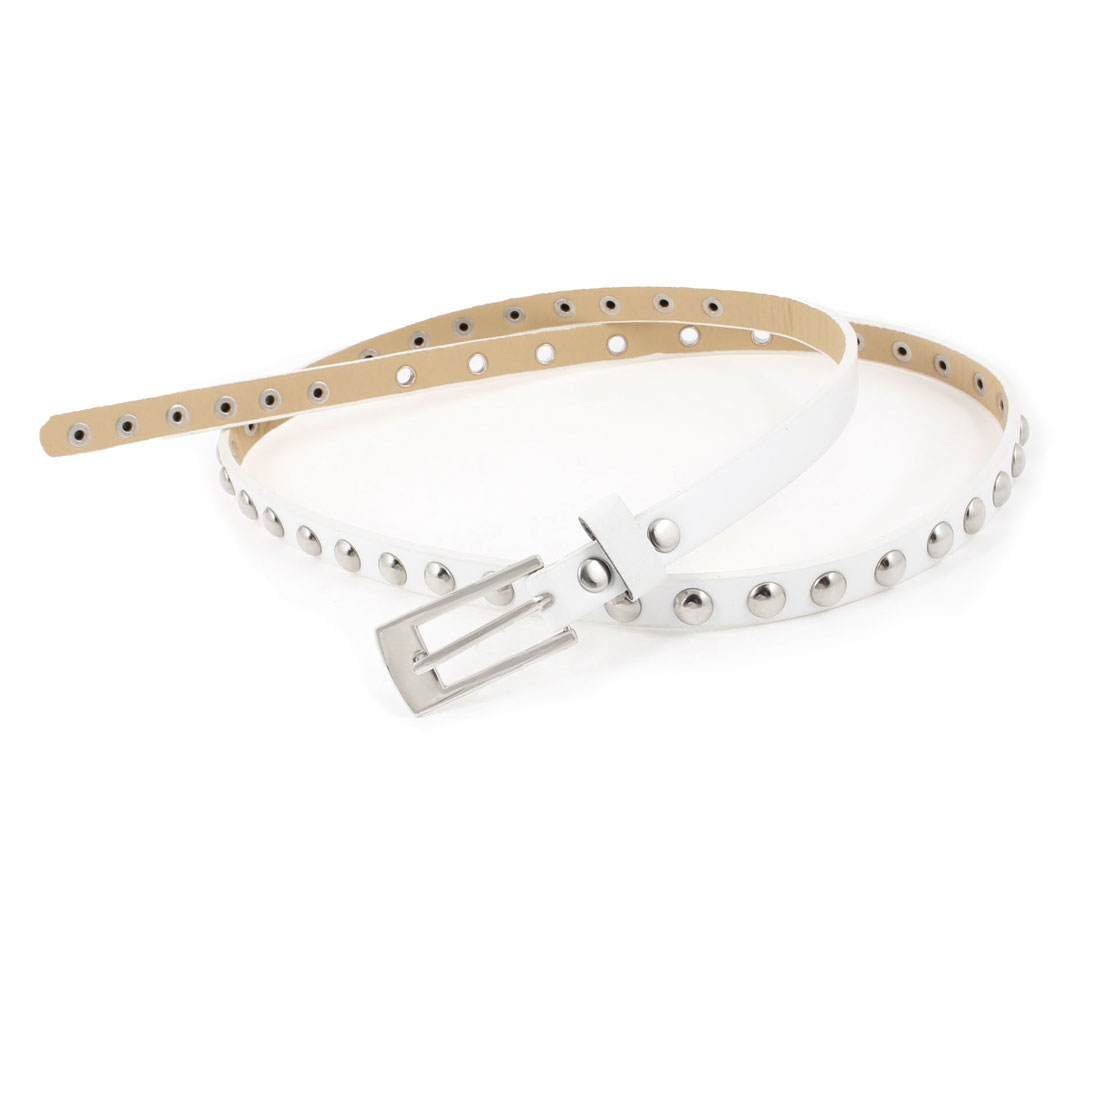 Women White Adjustable Single Prong Buckle Faux Leather Thin Waist Belt 2cm Wide